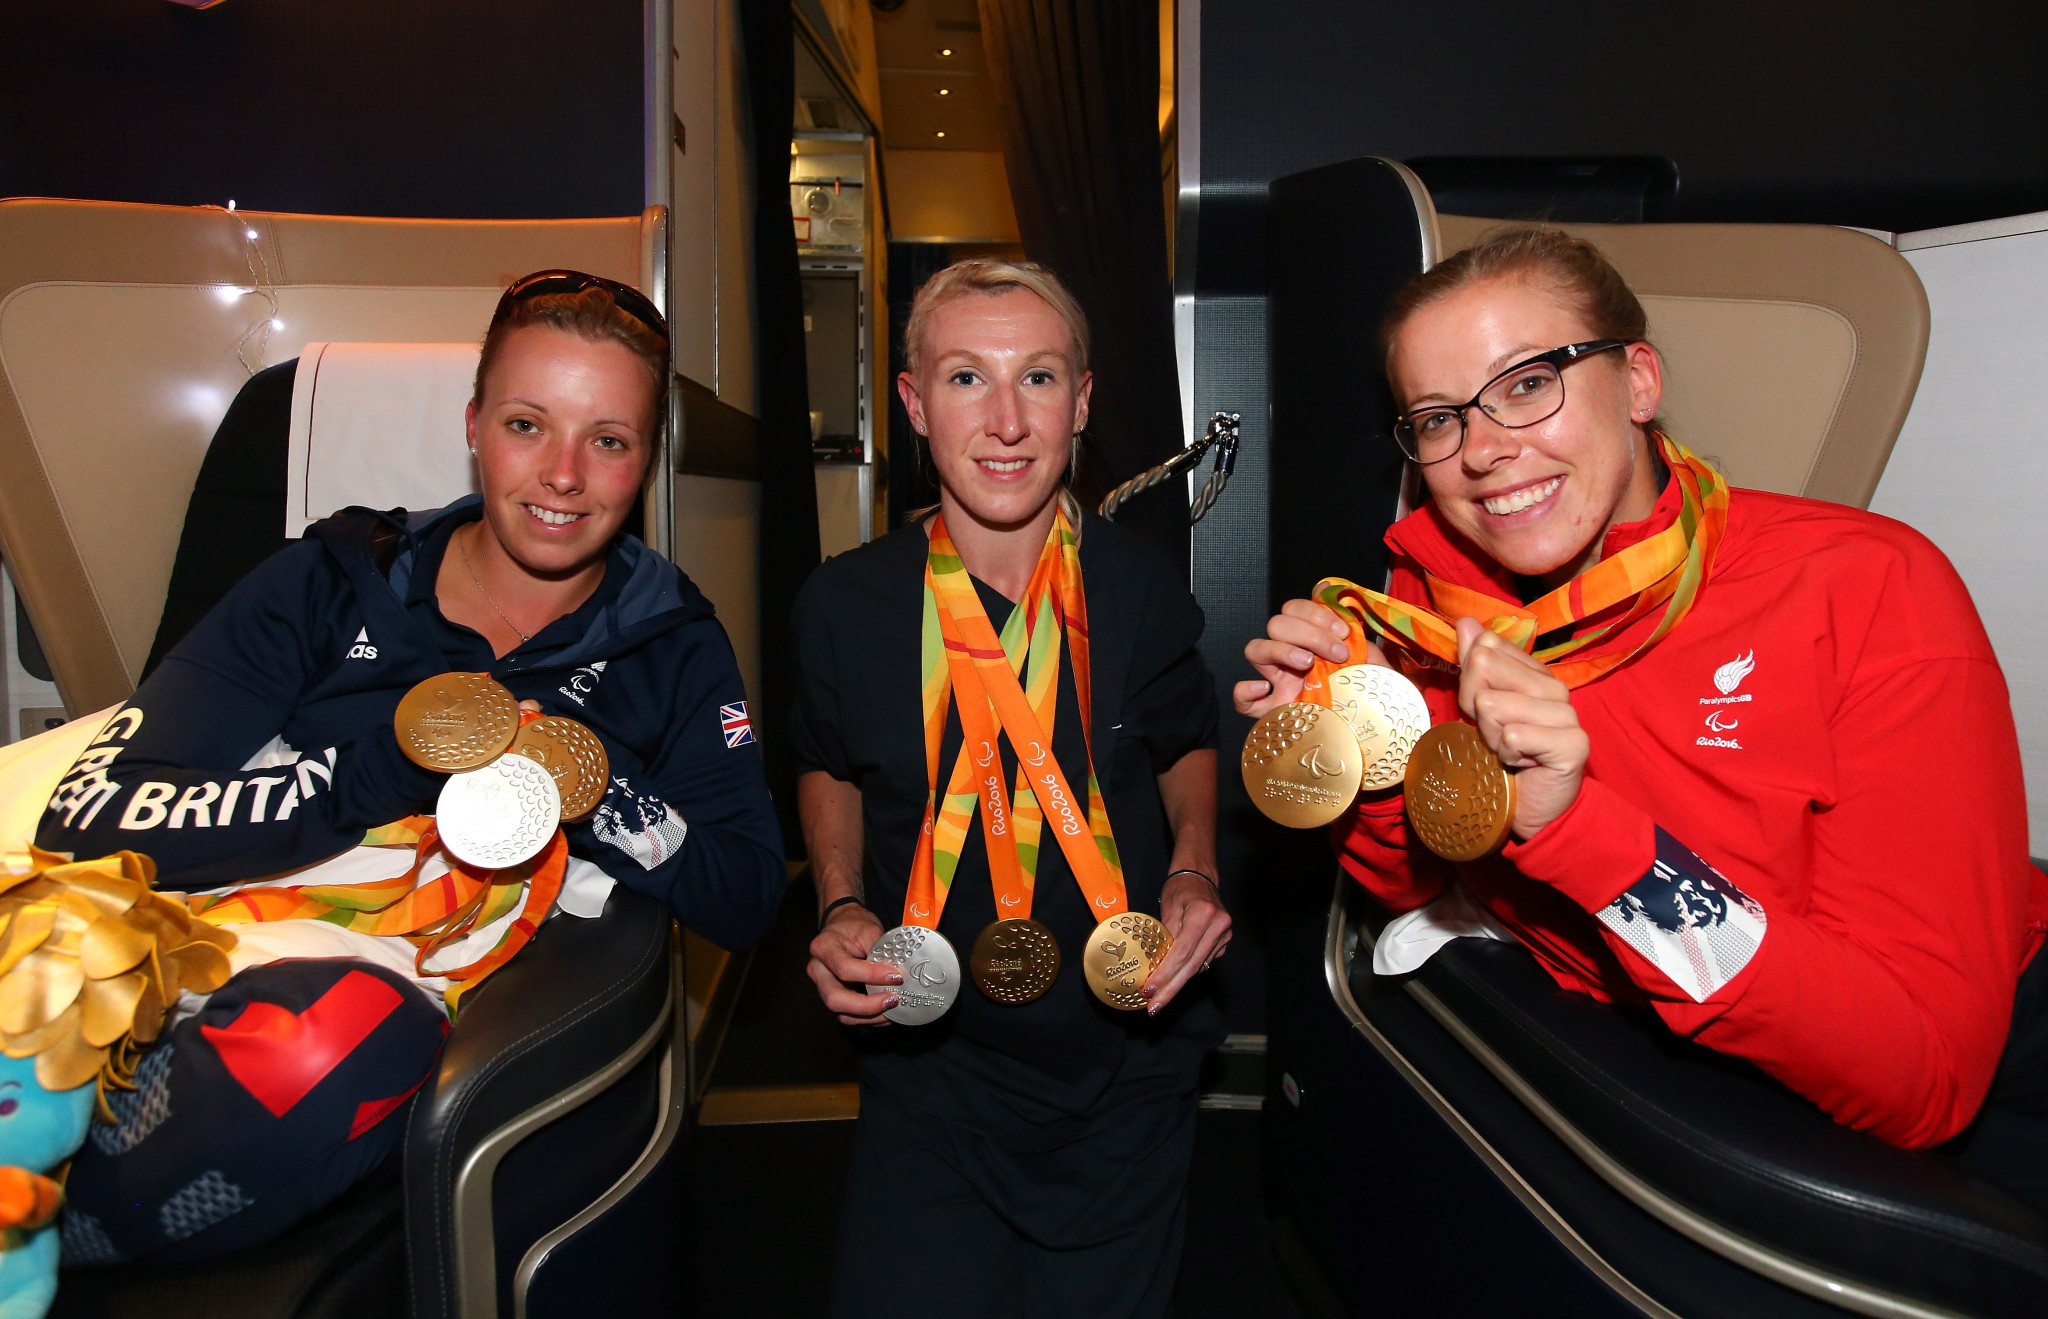 Sophie Wells, left, won a medal of each colour at the Rio 2016 Paralympic Games ©Getty Images